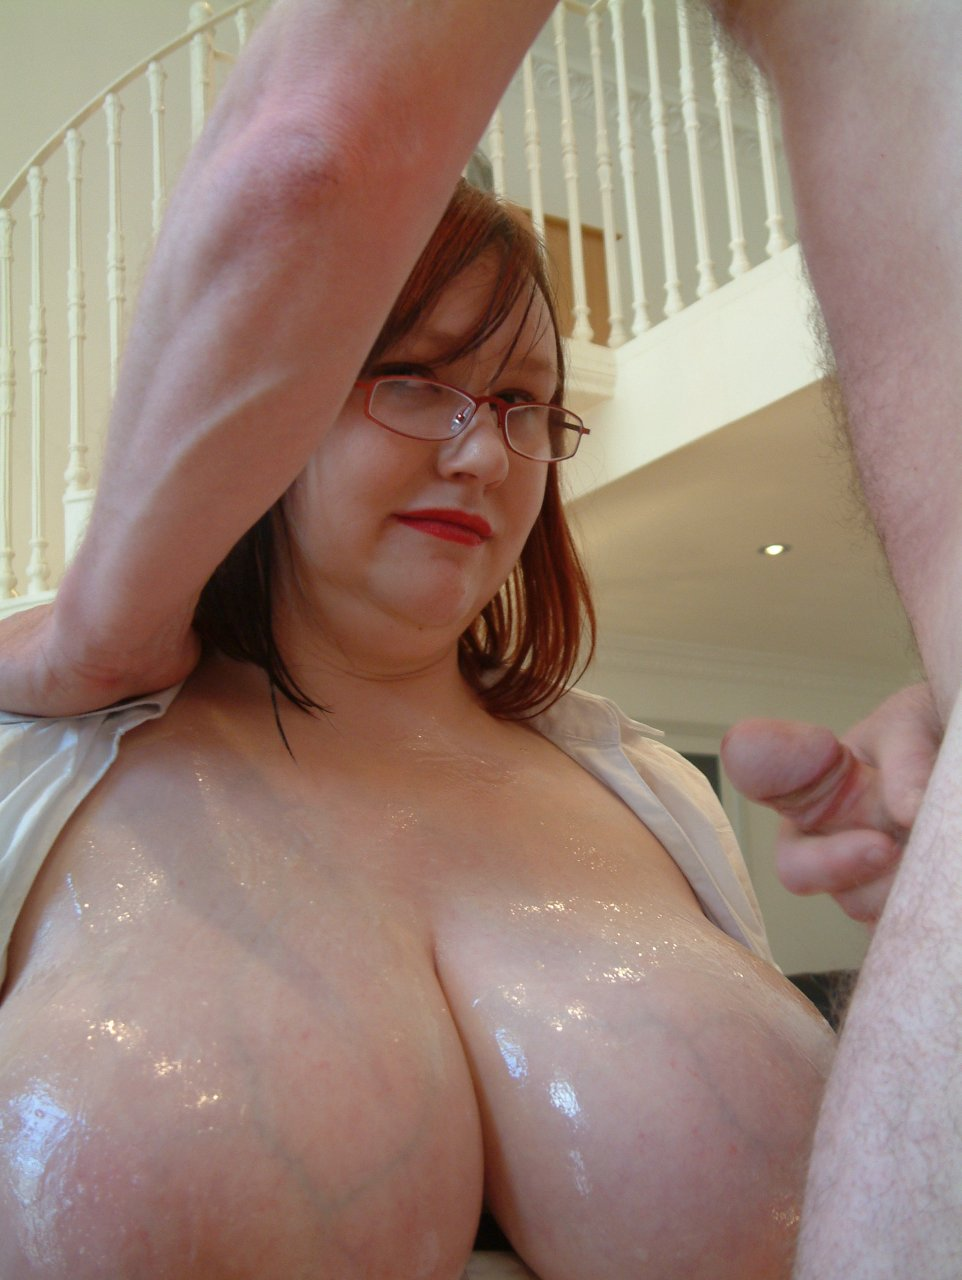 Teen girls boobs in bra pic mommy!! Cumworld